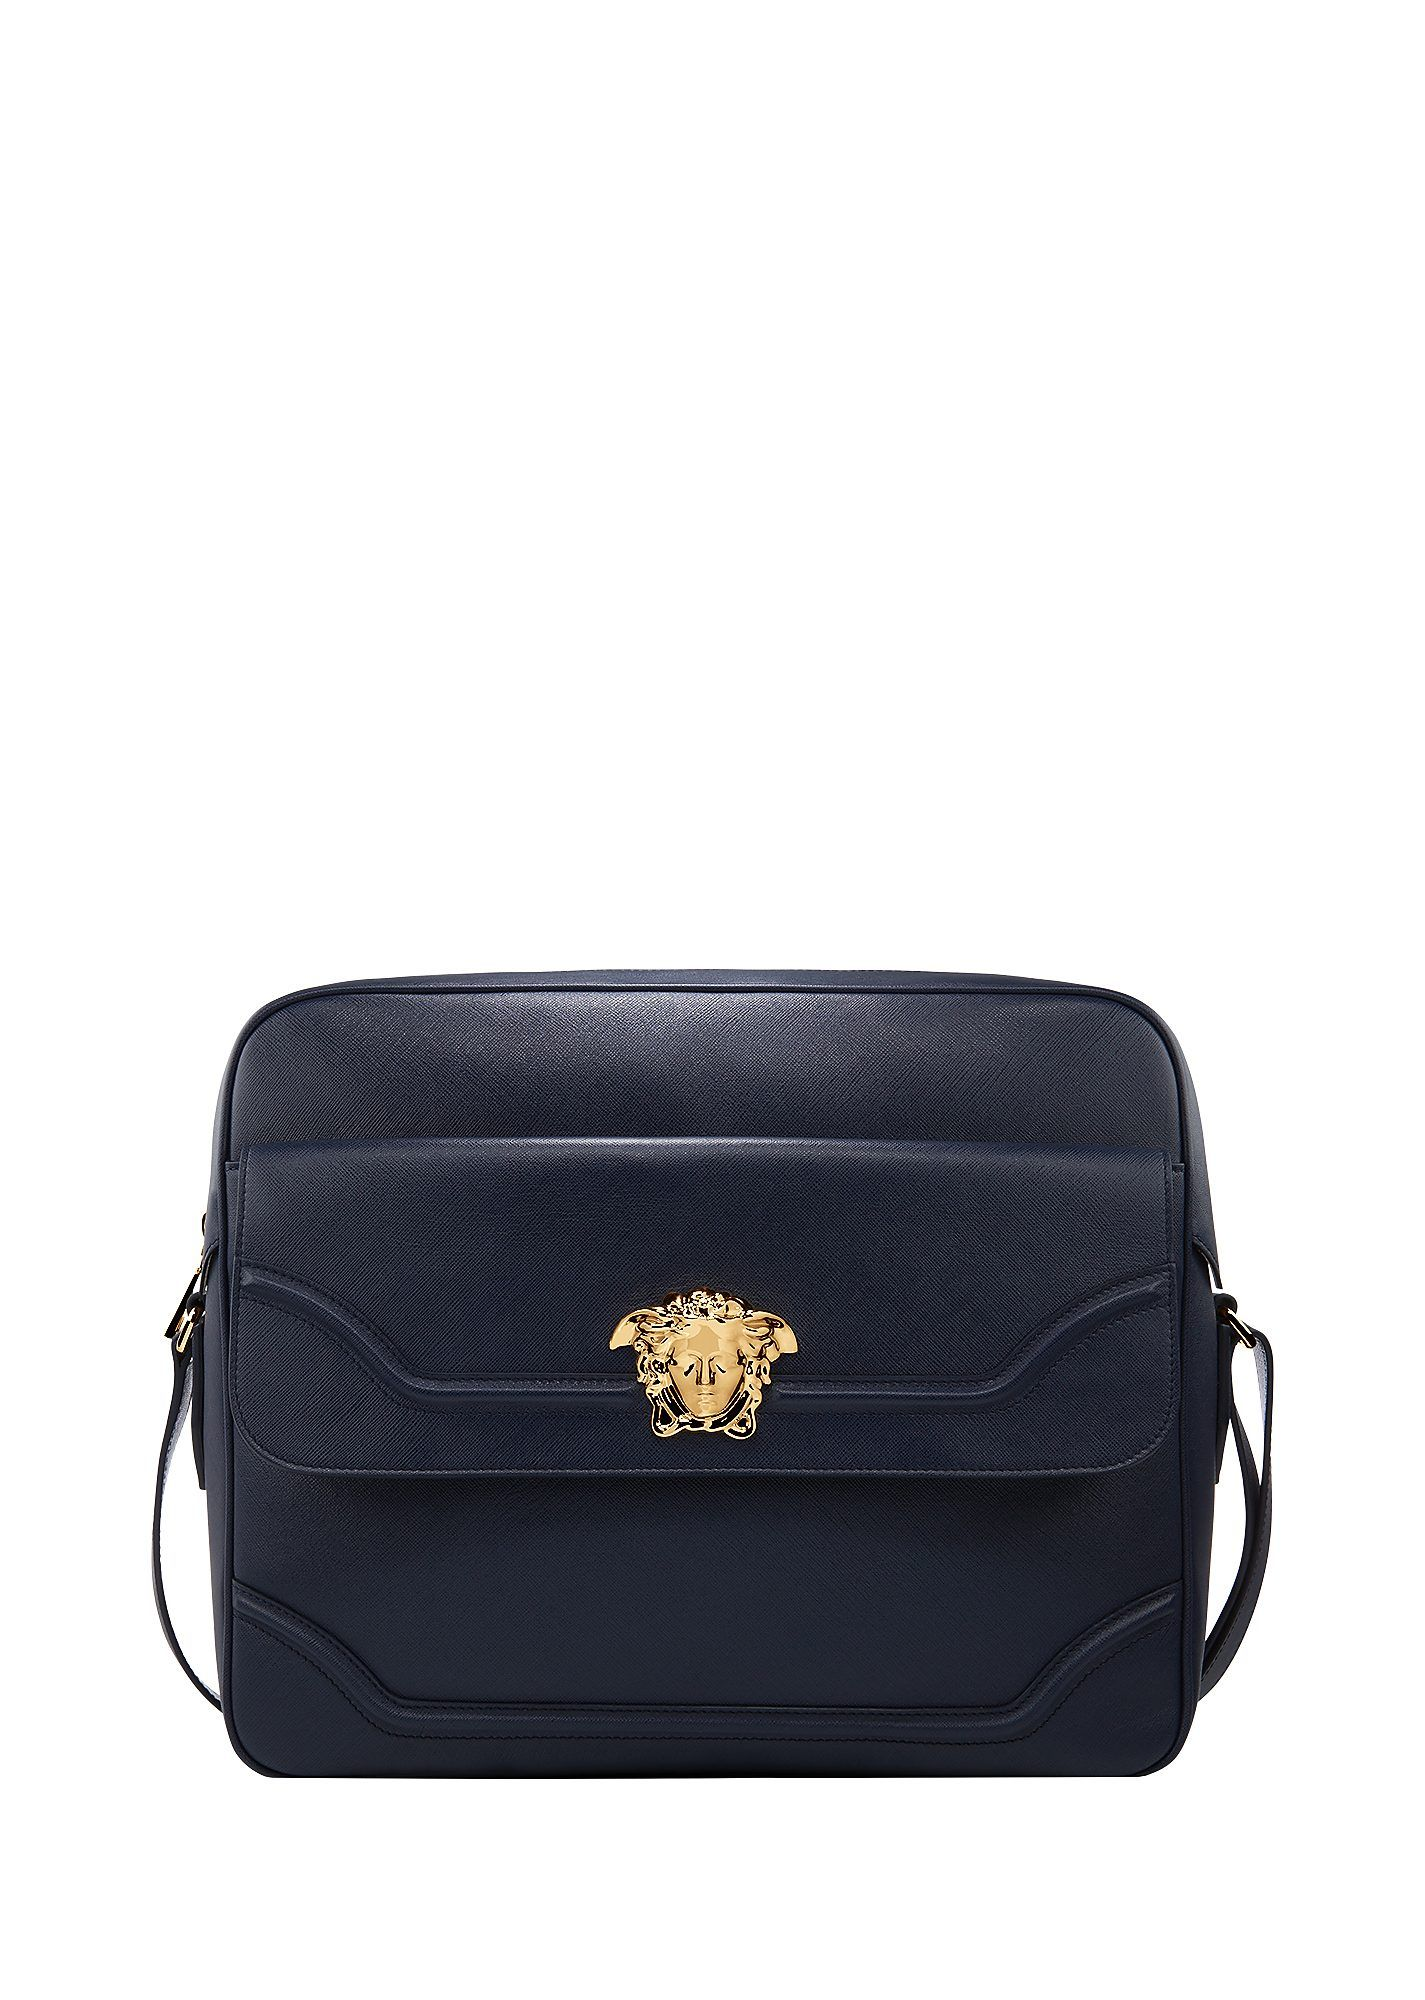 526acc9dba VERSACE Palazzo Camera Case.  versace  bags  shoulder bags  leather  lining